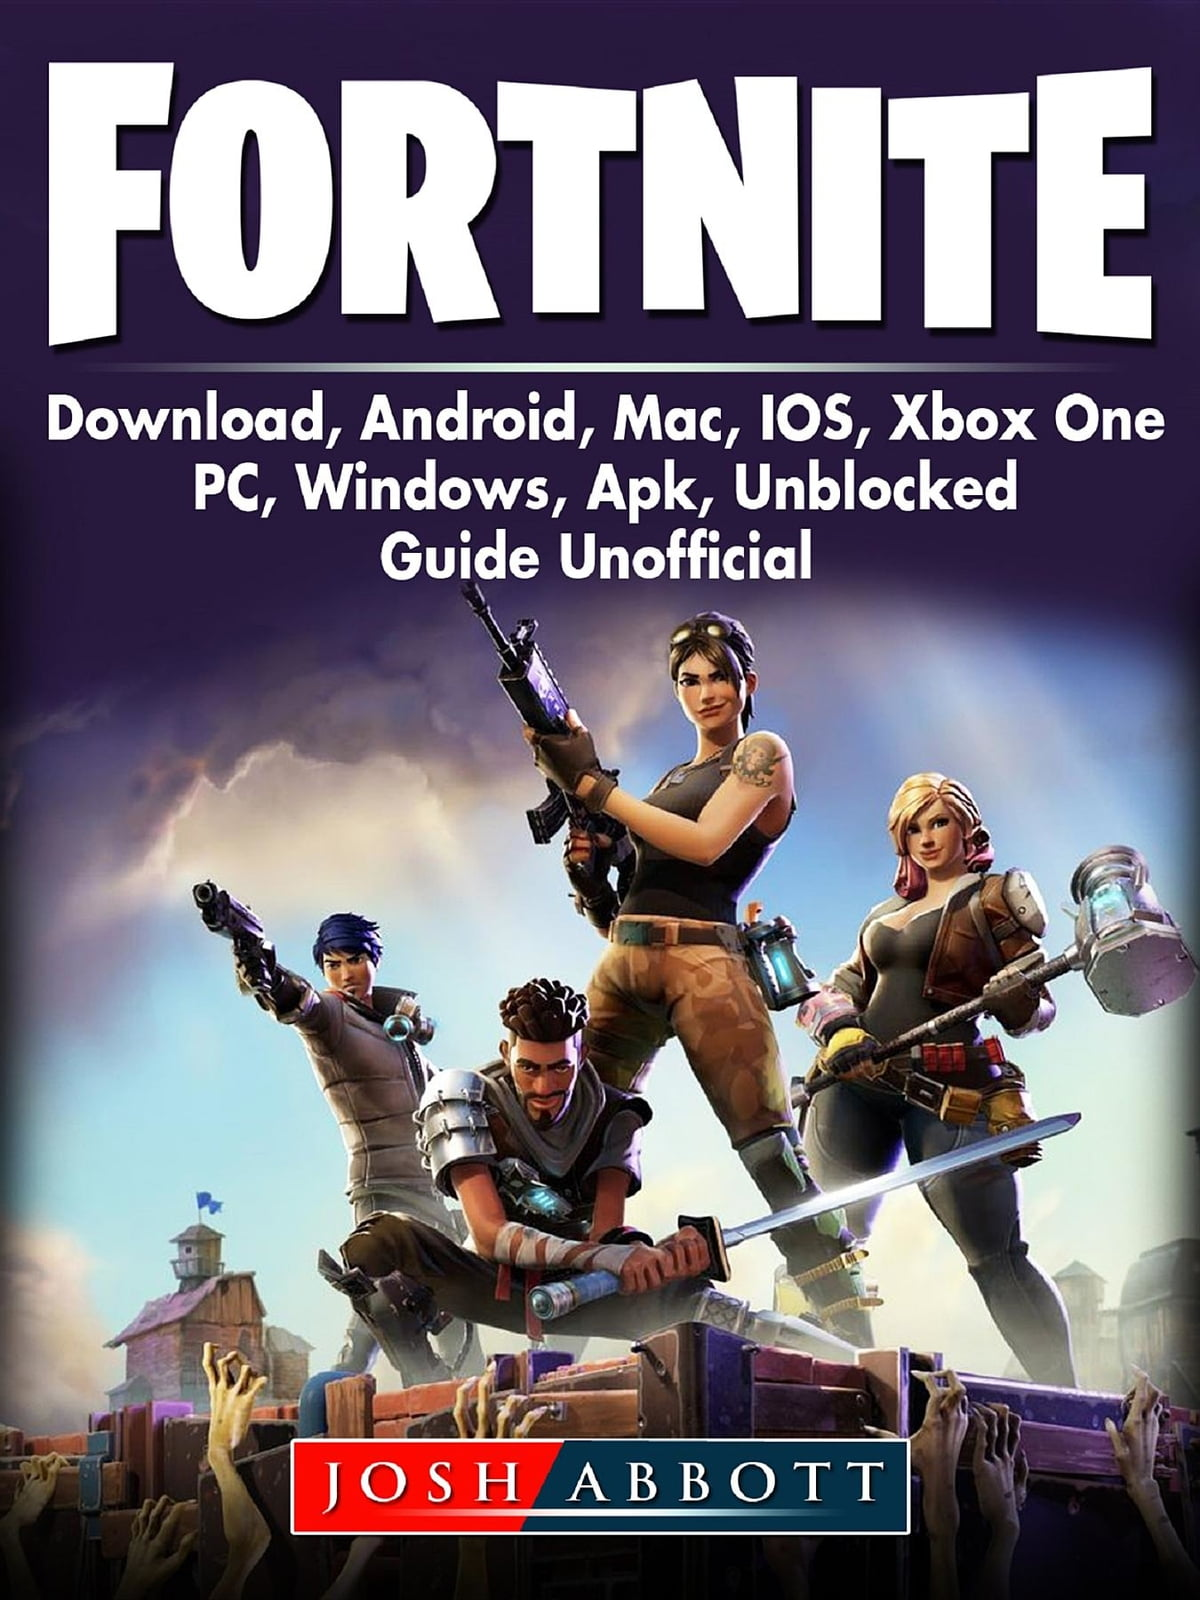 Fortnite Download, Android, Mac, IOS, Xbox One, PC, Windows, APK,  Unblocked, Guide Unofficial ebook by Josh Abbott - Rakuten Kobo